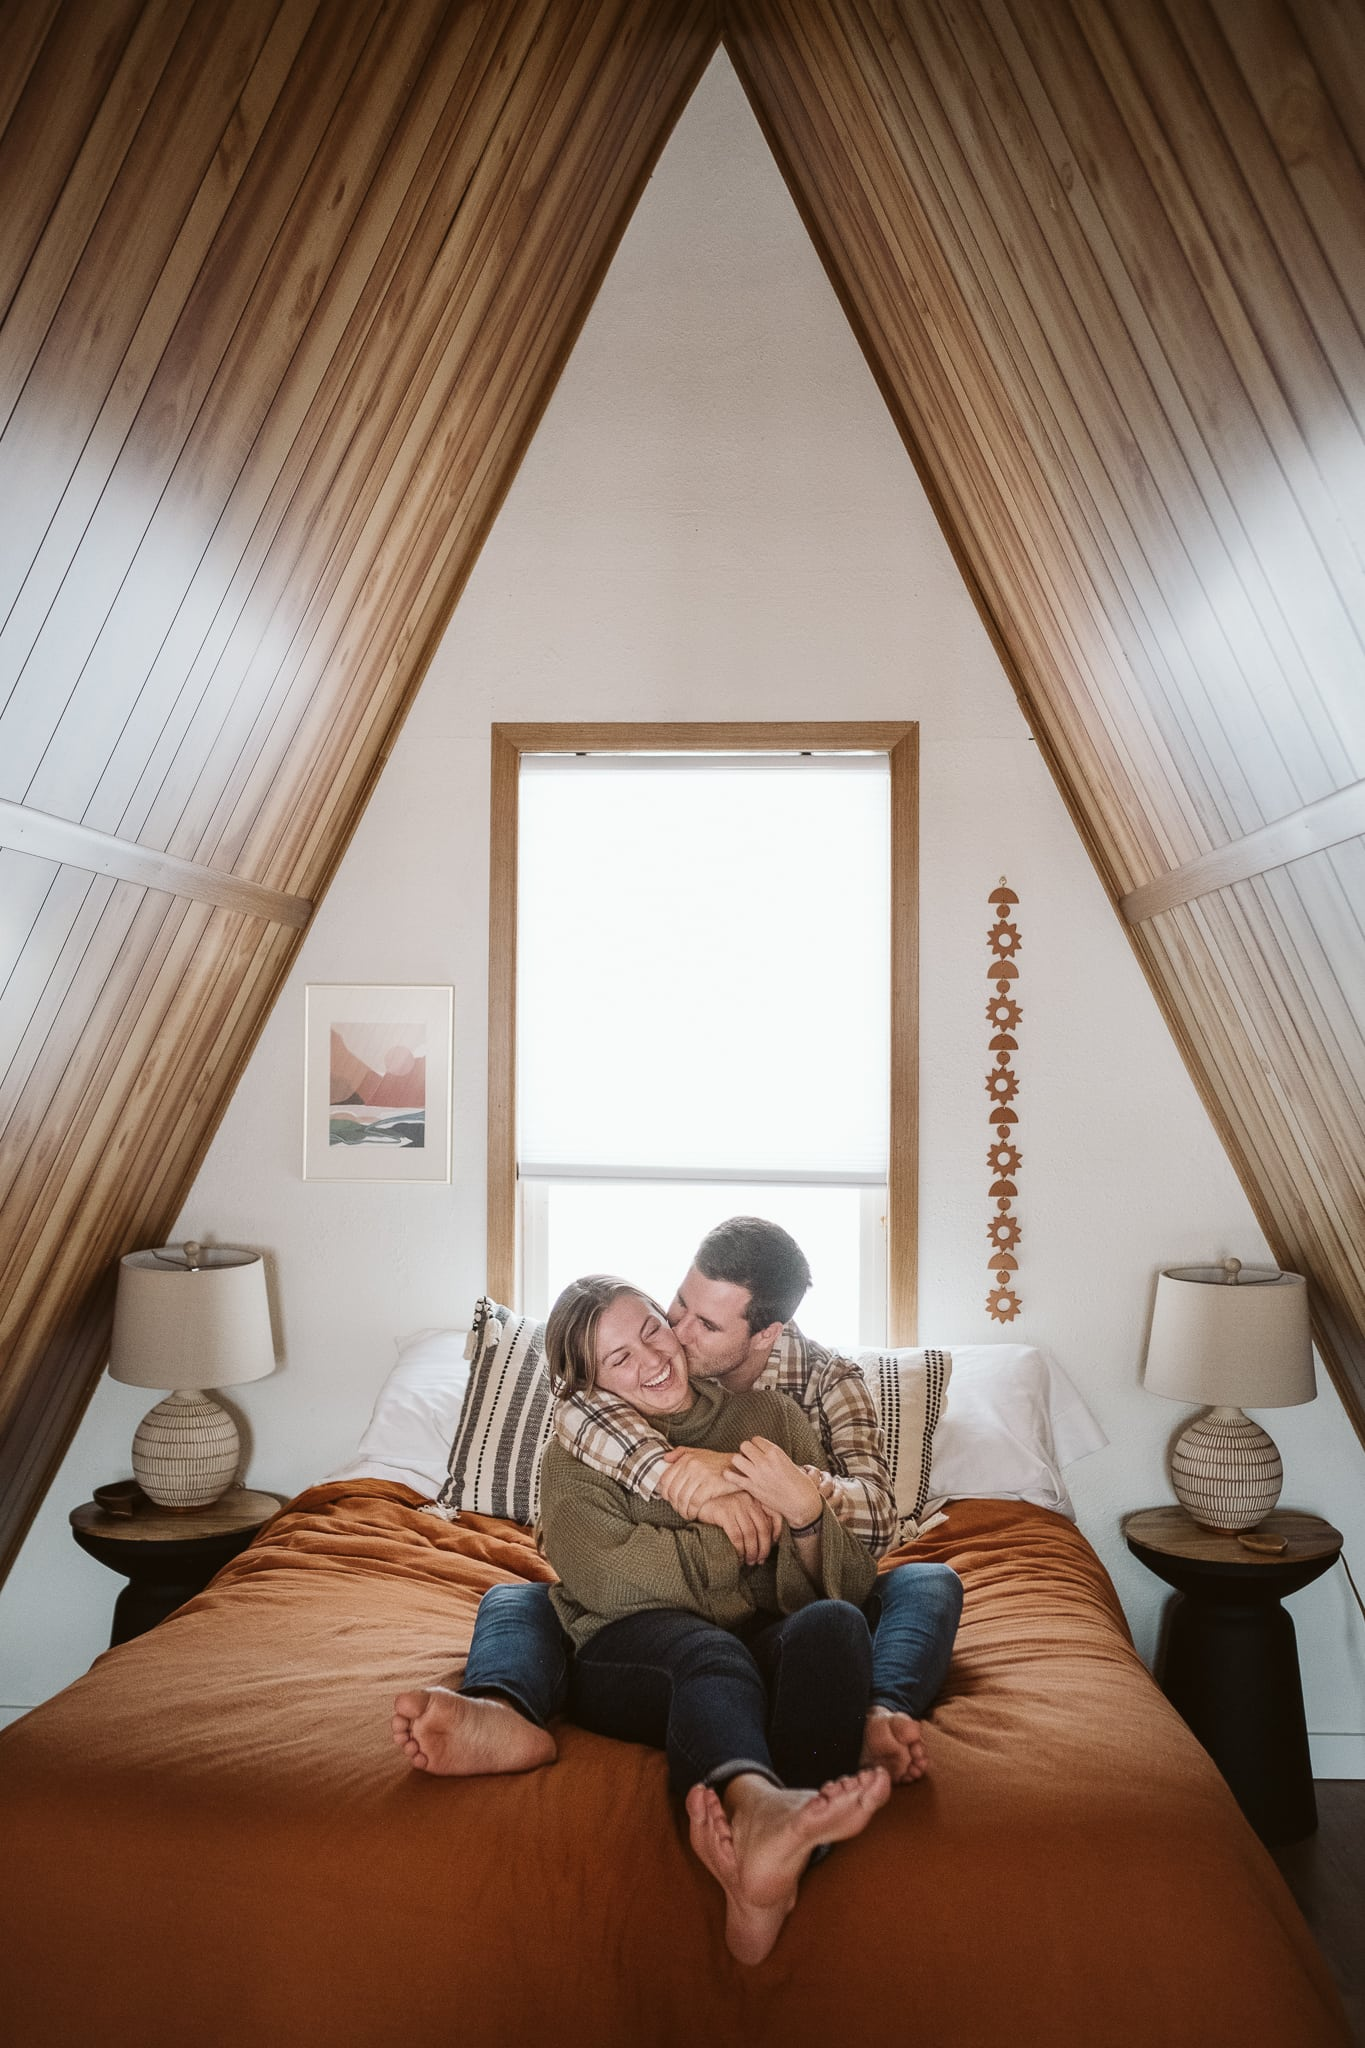 A-Frame cabin airbnb rental for elopement